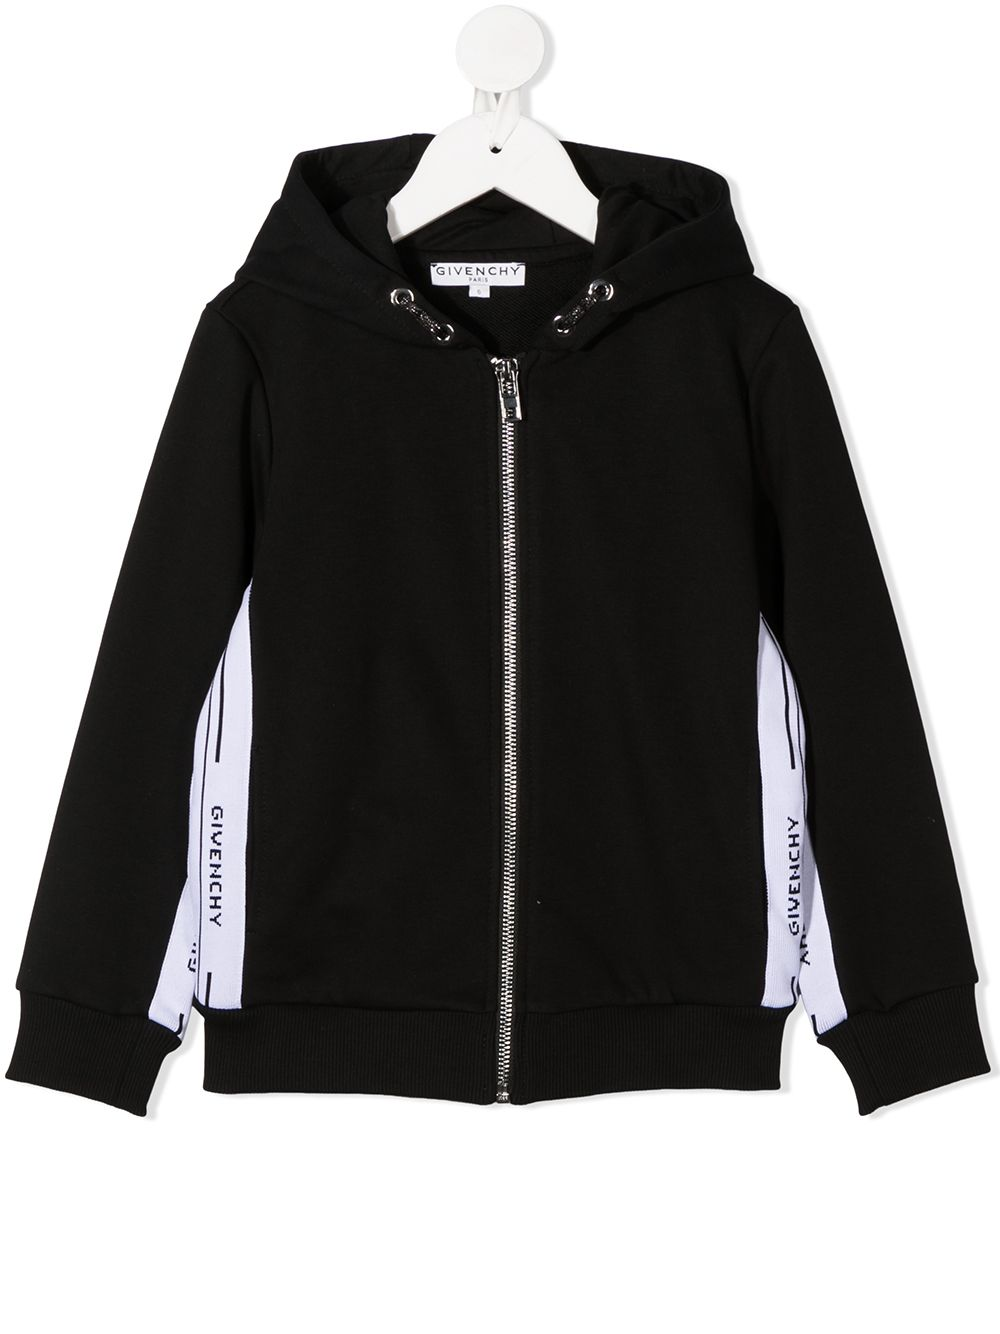 GIVENCHY KIDS Branded Long-Sleeve Hoodie Black - Maison De Fashion